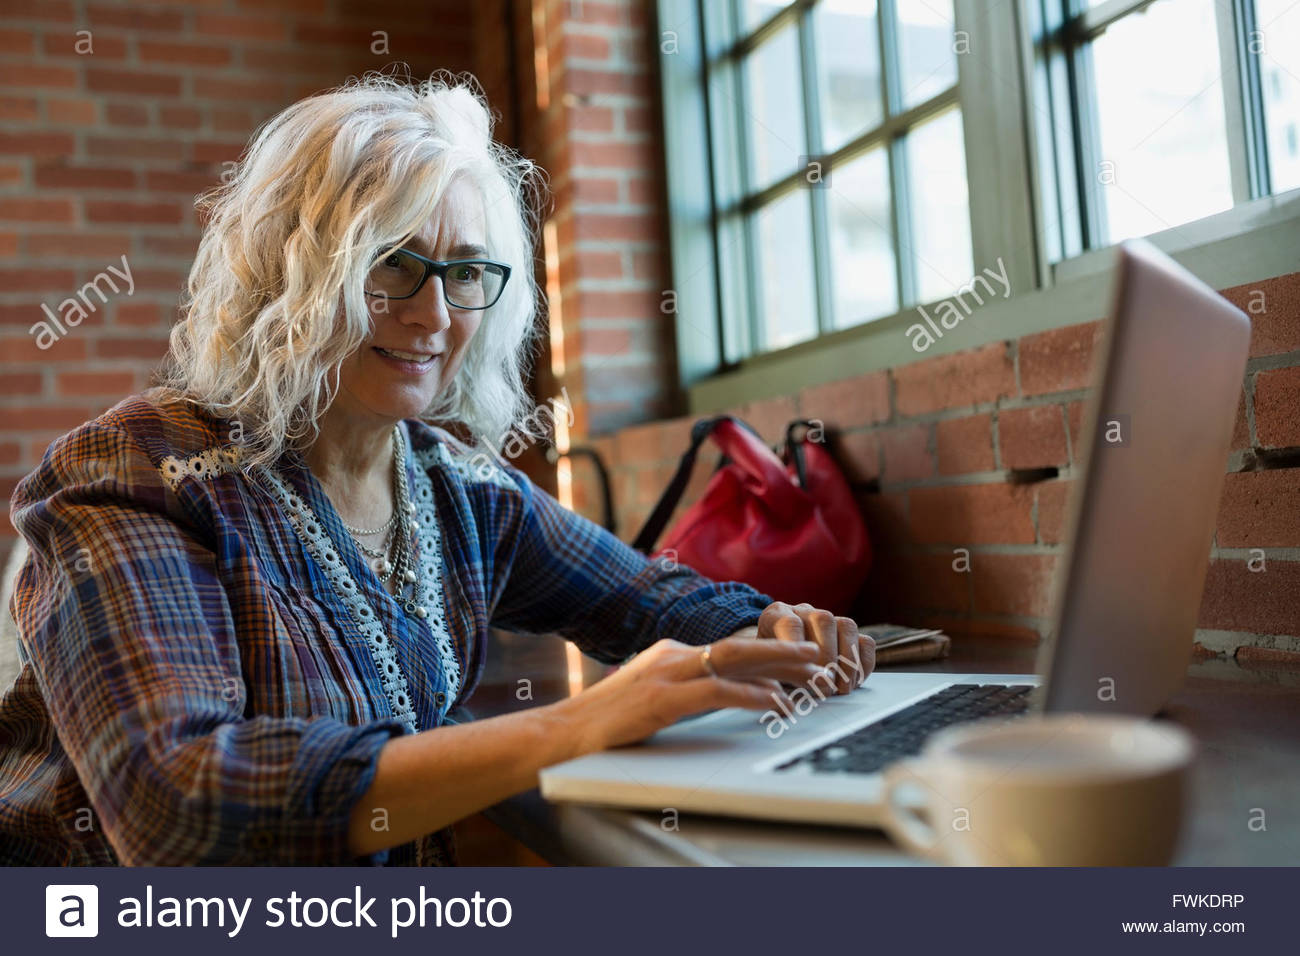 Woman working on laptop in coffee shop Stock Photo